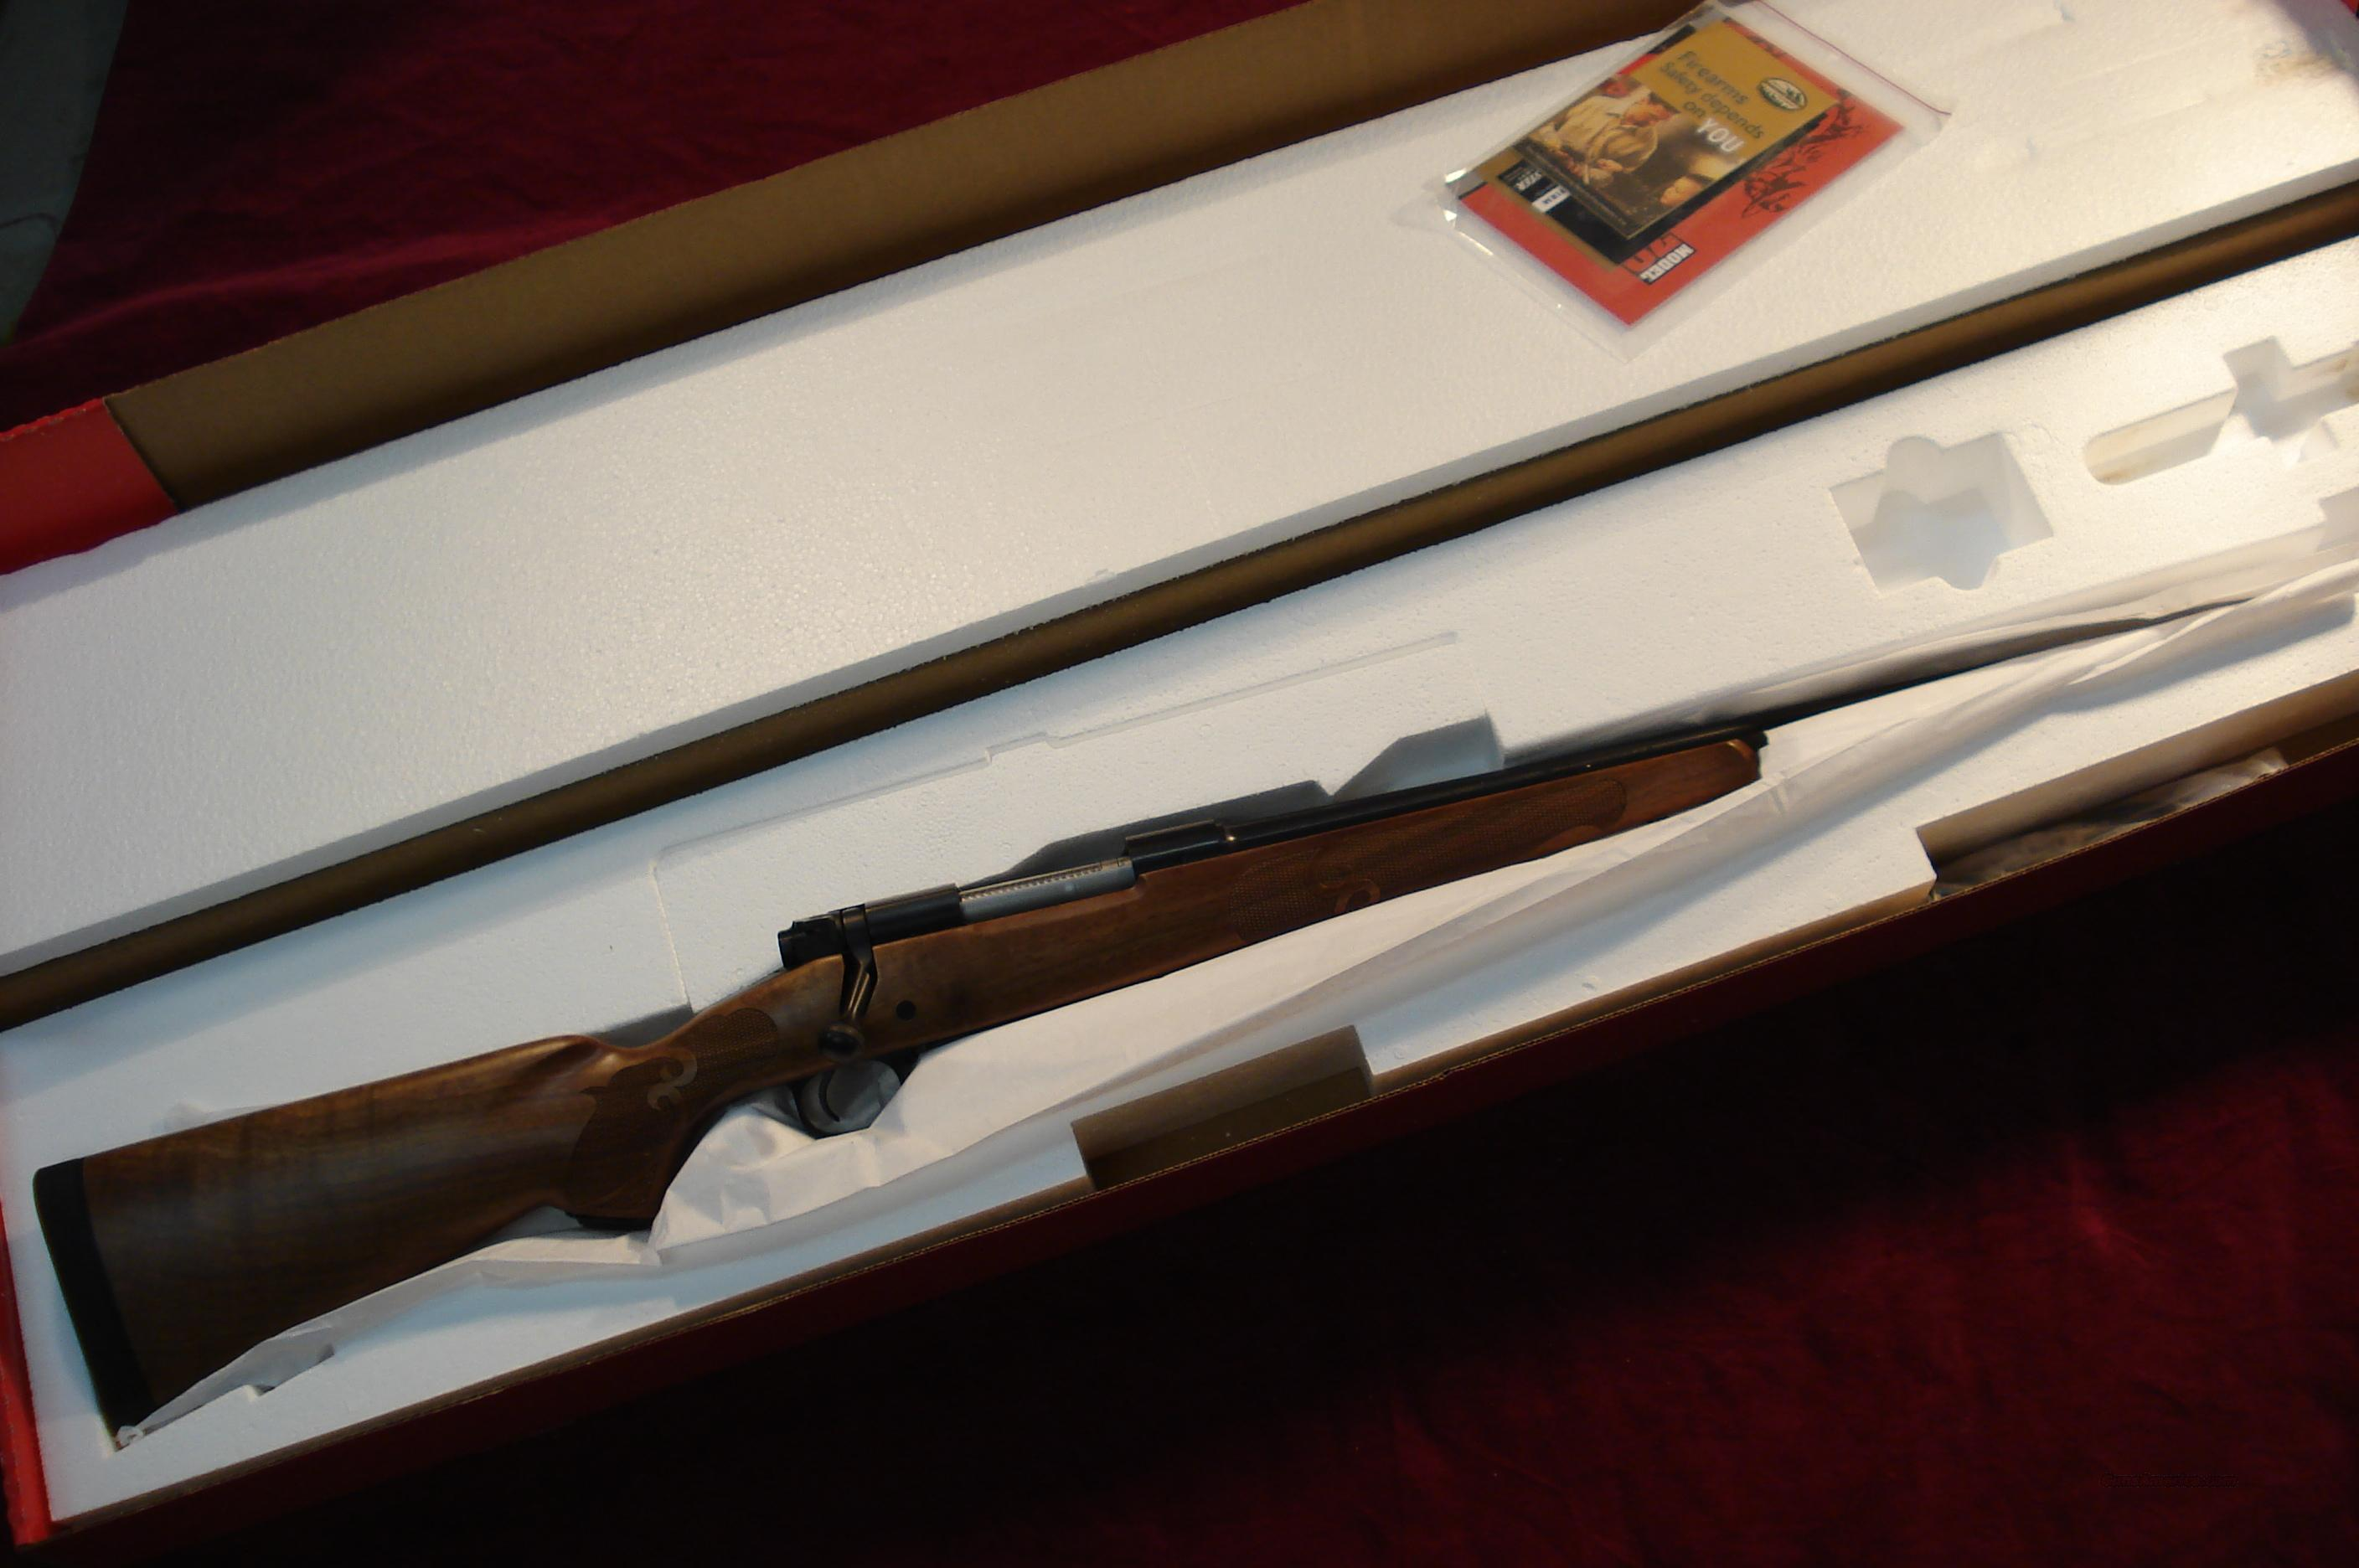 WINCHESTER 70 FEATHERWEIGHT DELUXE 30-06 CAL. NEW  Guns > Rifles > Winchester Rifles - Modern Bolt/Auto/Single > Model 70 > Post-64